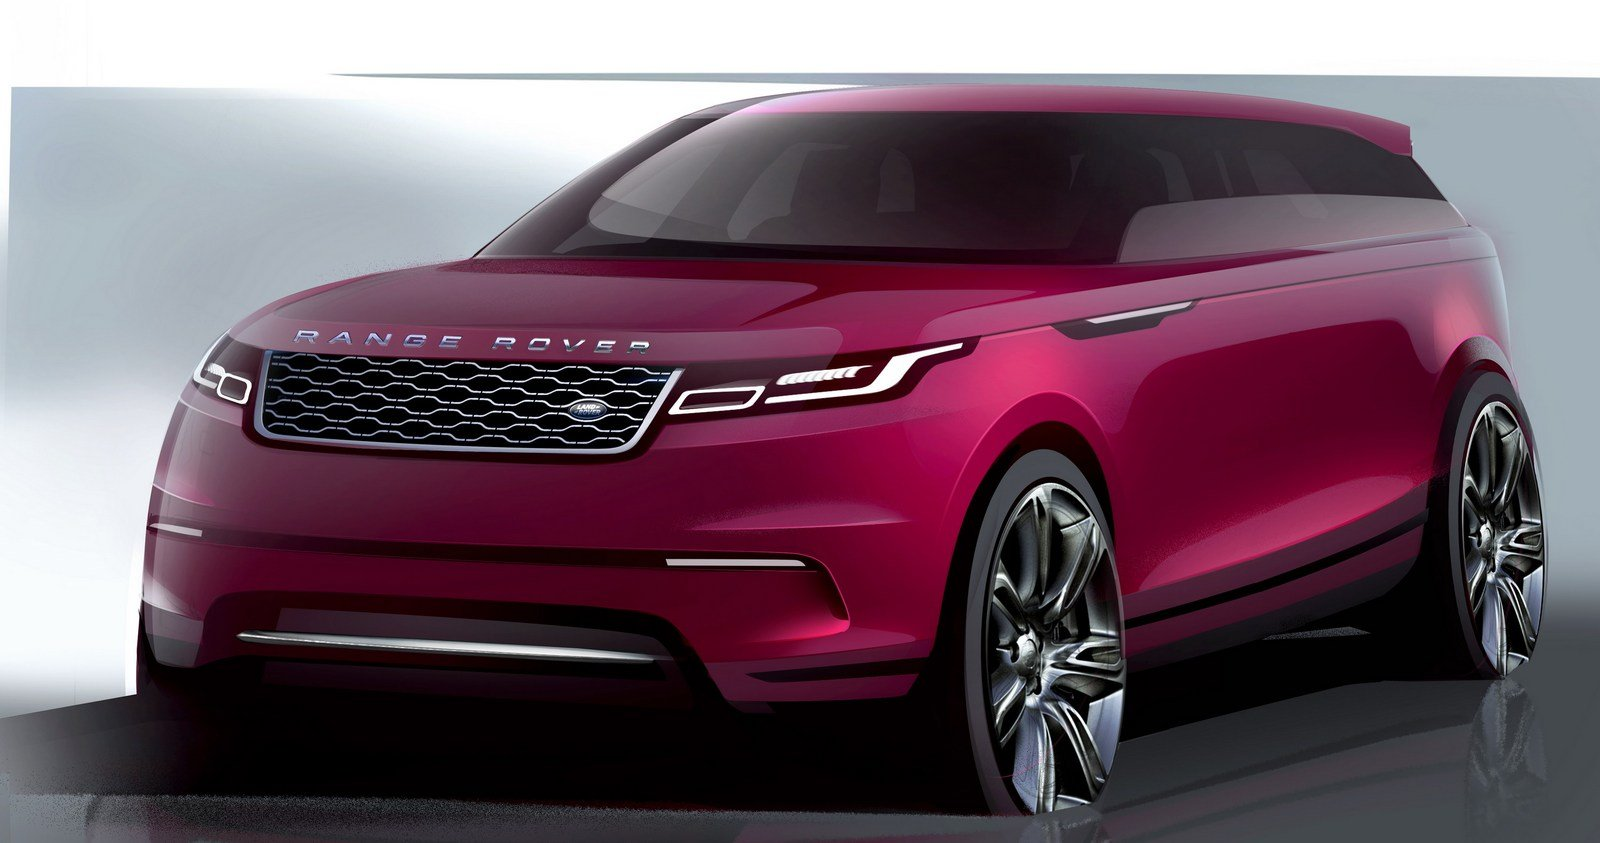 2018 land rover range rover velar picture 707487 truck review top speed. Black Bedroom Furniture Sets. Home Design Ideas